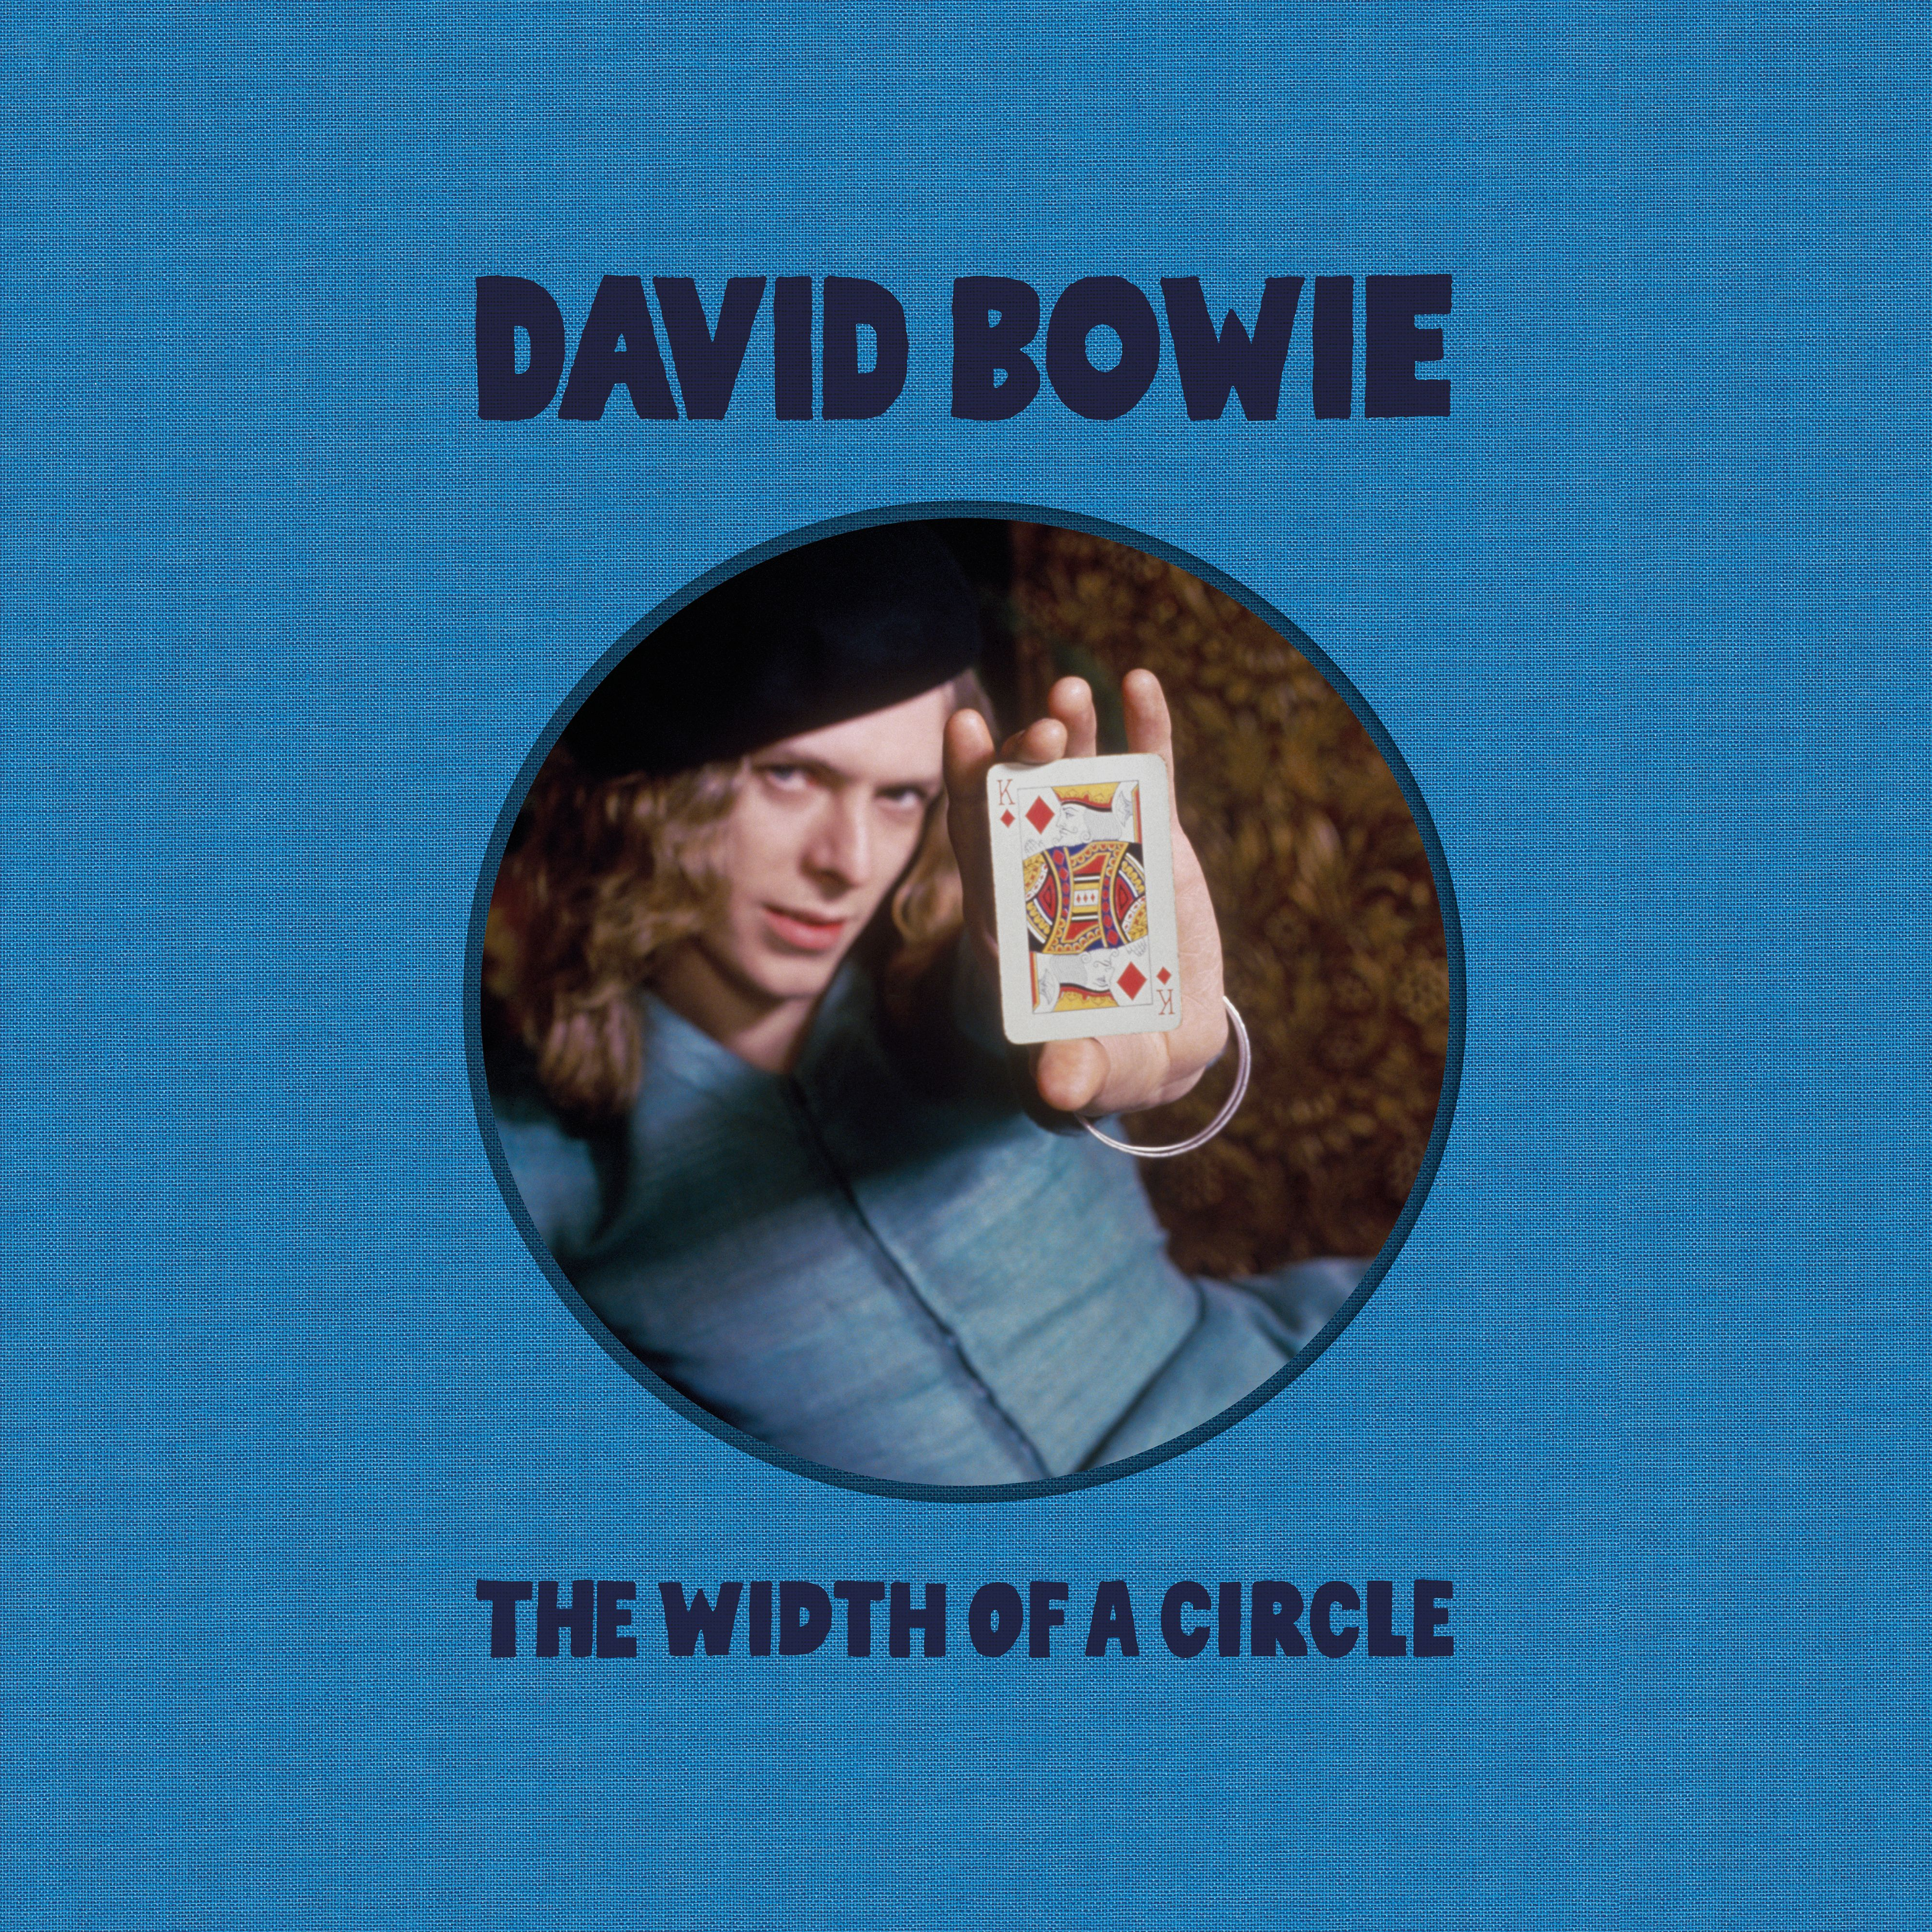 David Bowie - The Width Of A Circle album cover